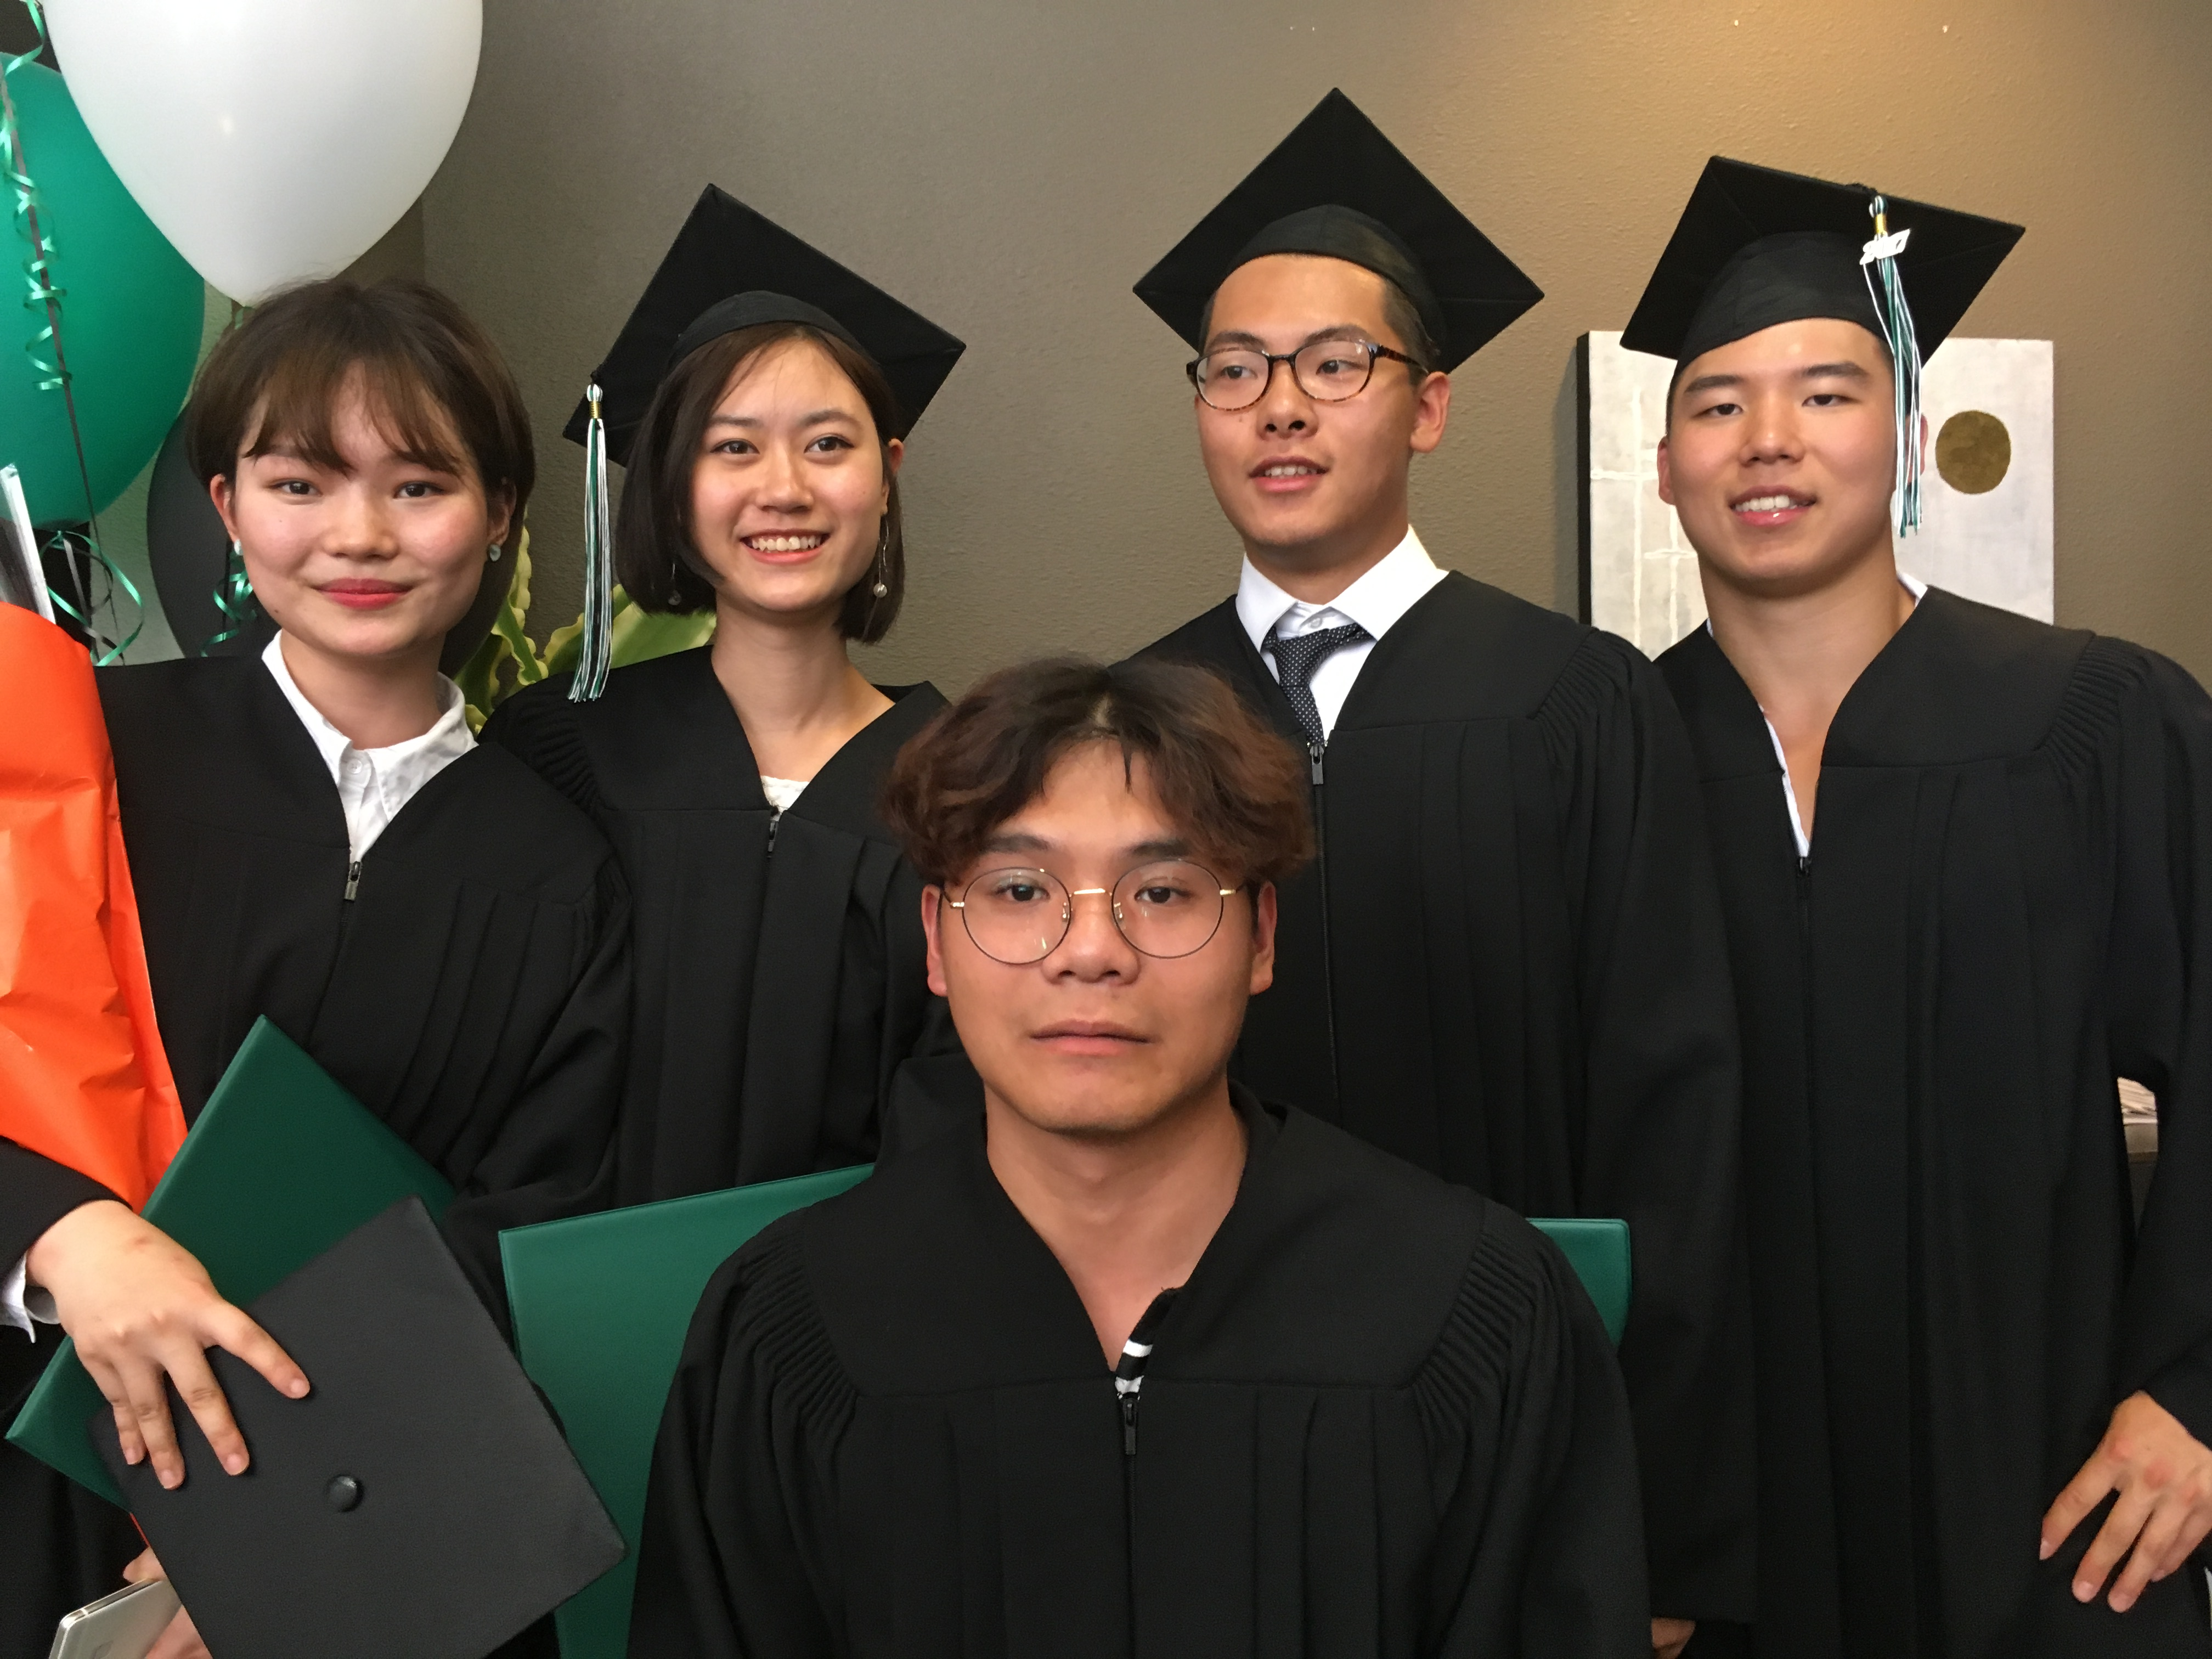 Commencement Ceremony Grade 12 students